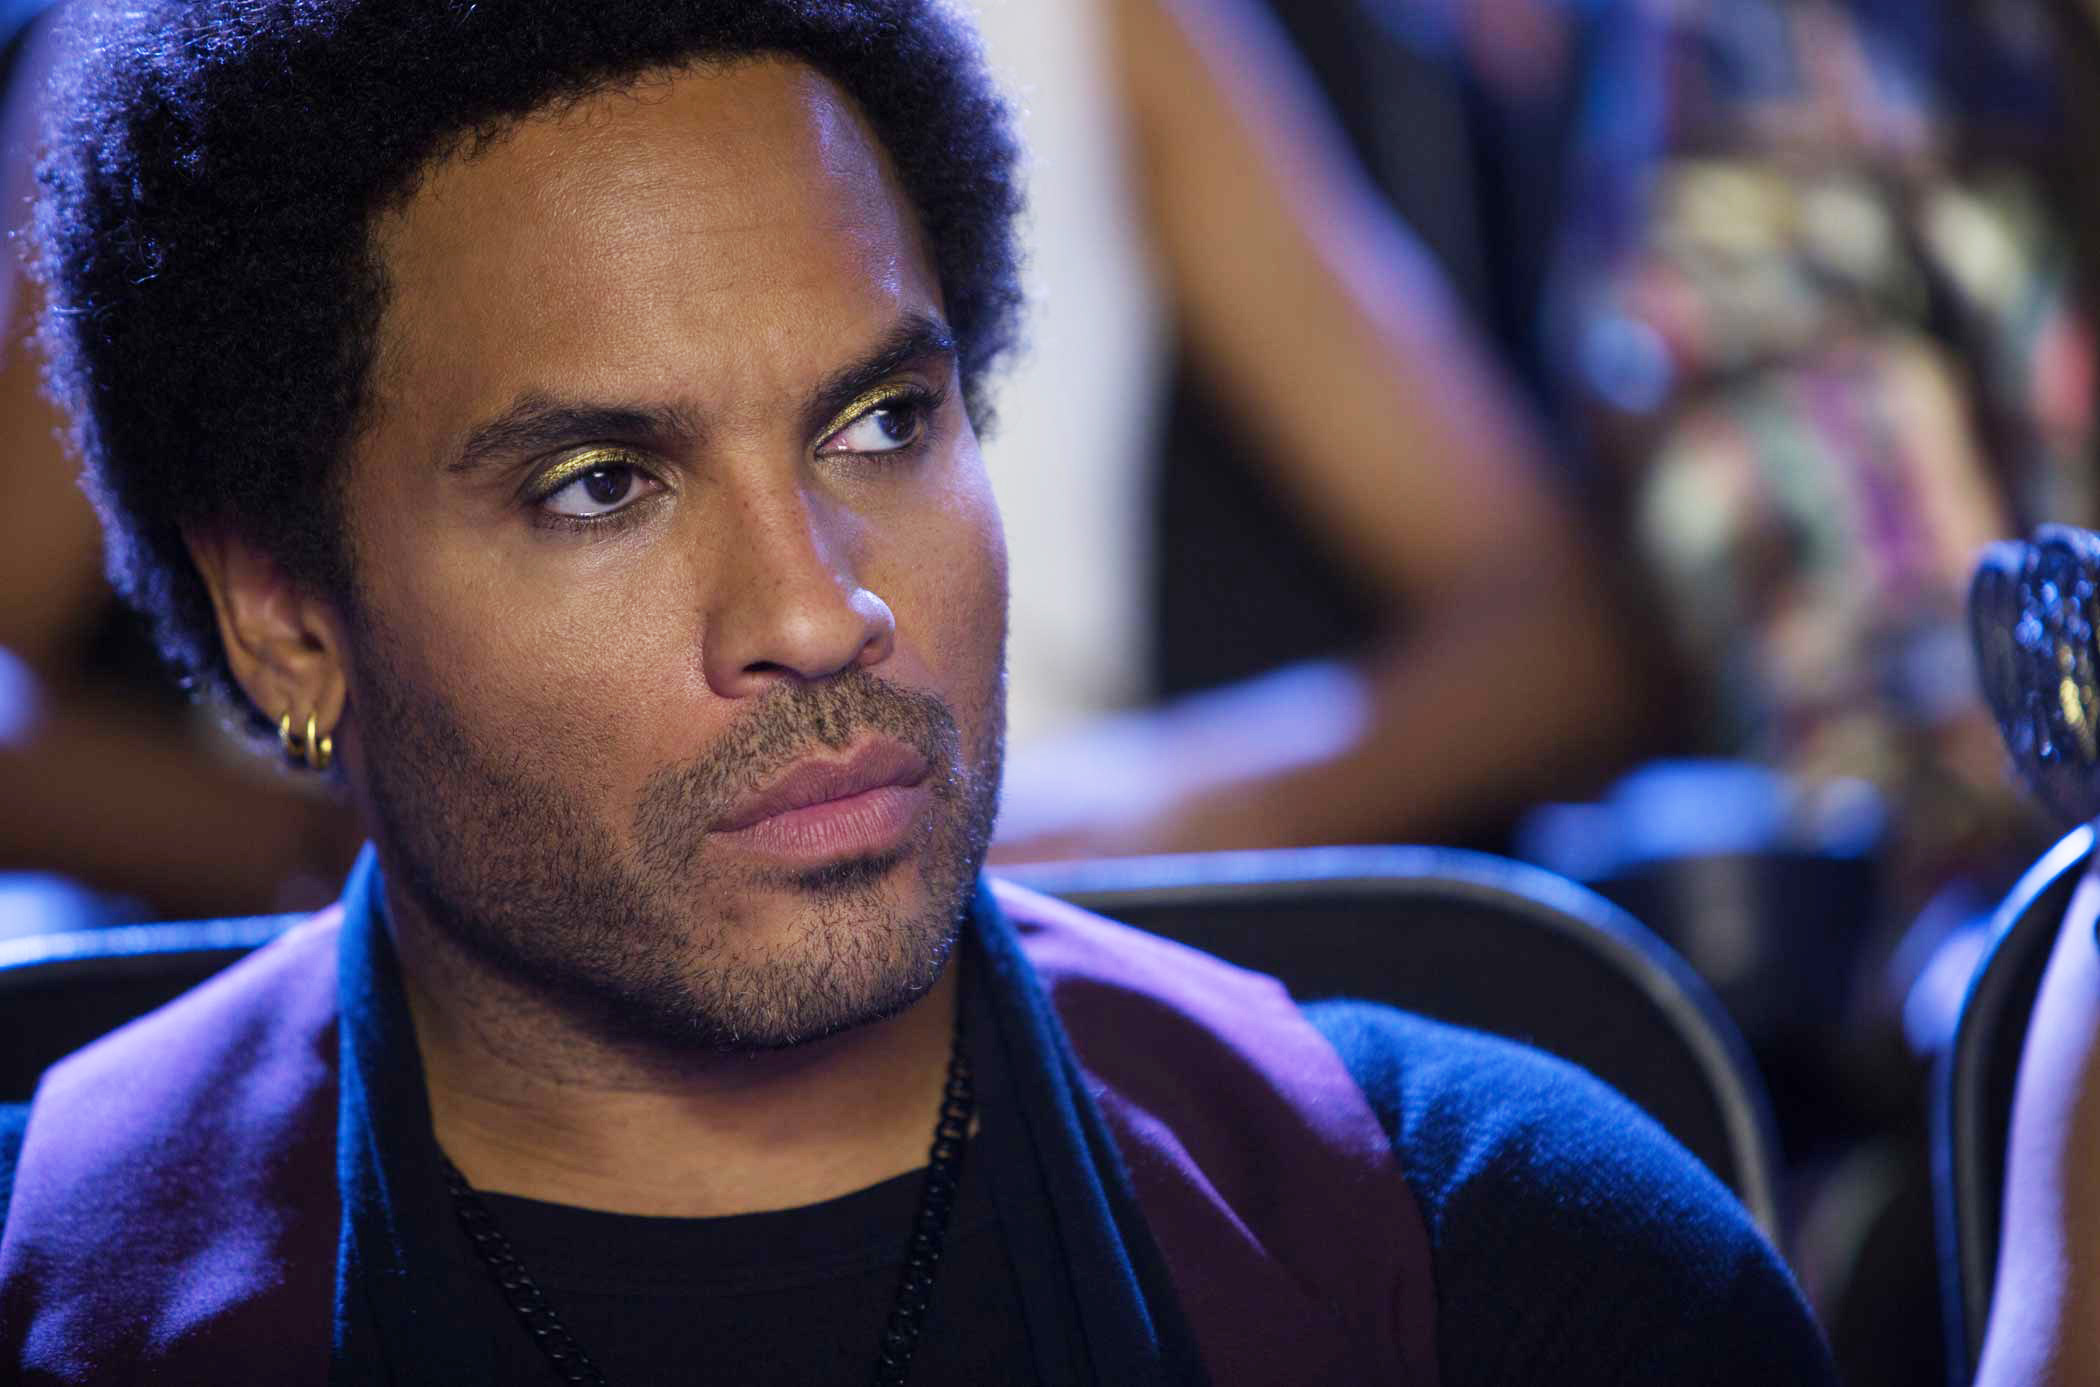 Lenny Kravitz as Cinna in The Hunger Games: Catching Fire, 2013.